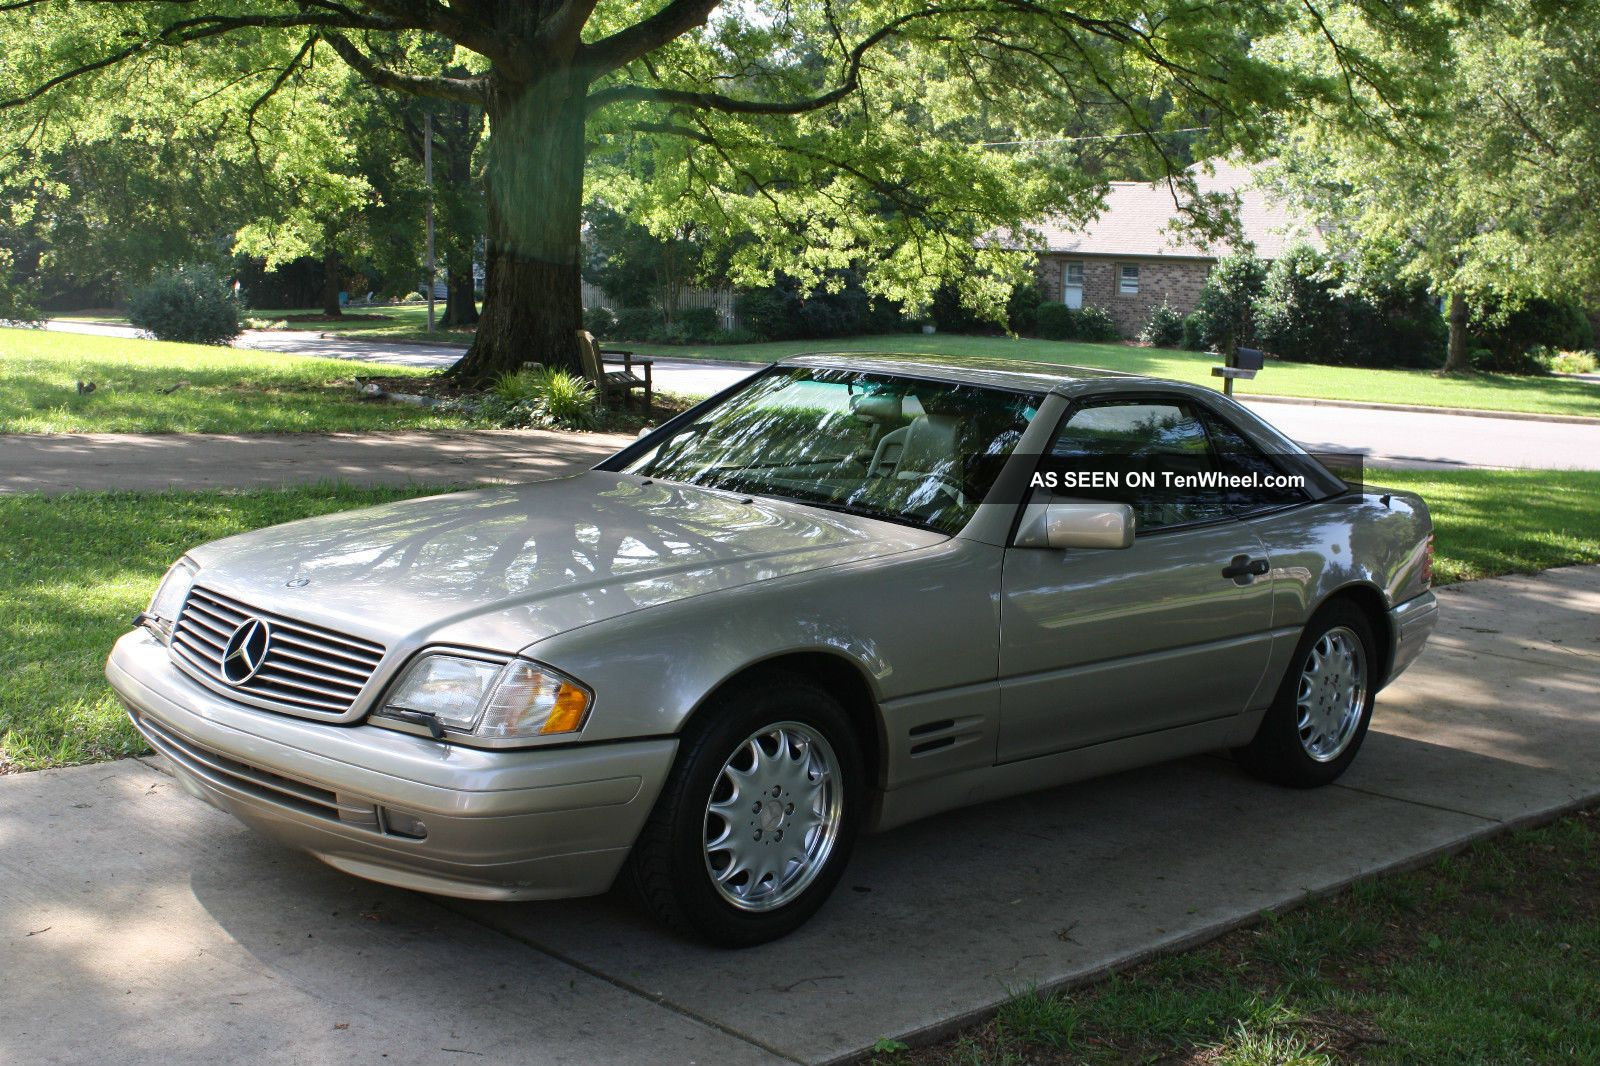 1996 Mercedes Benz Sl500,  Top Stand,  Covers,  K - Band Radar,  Hands, SL-Class photo